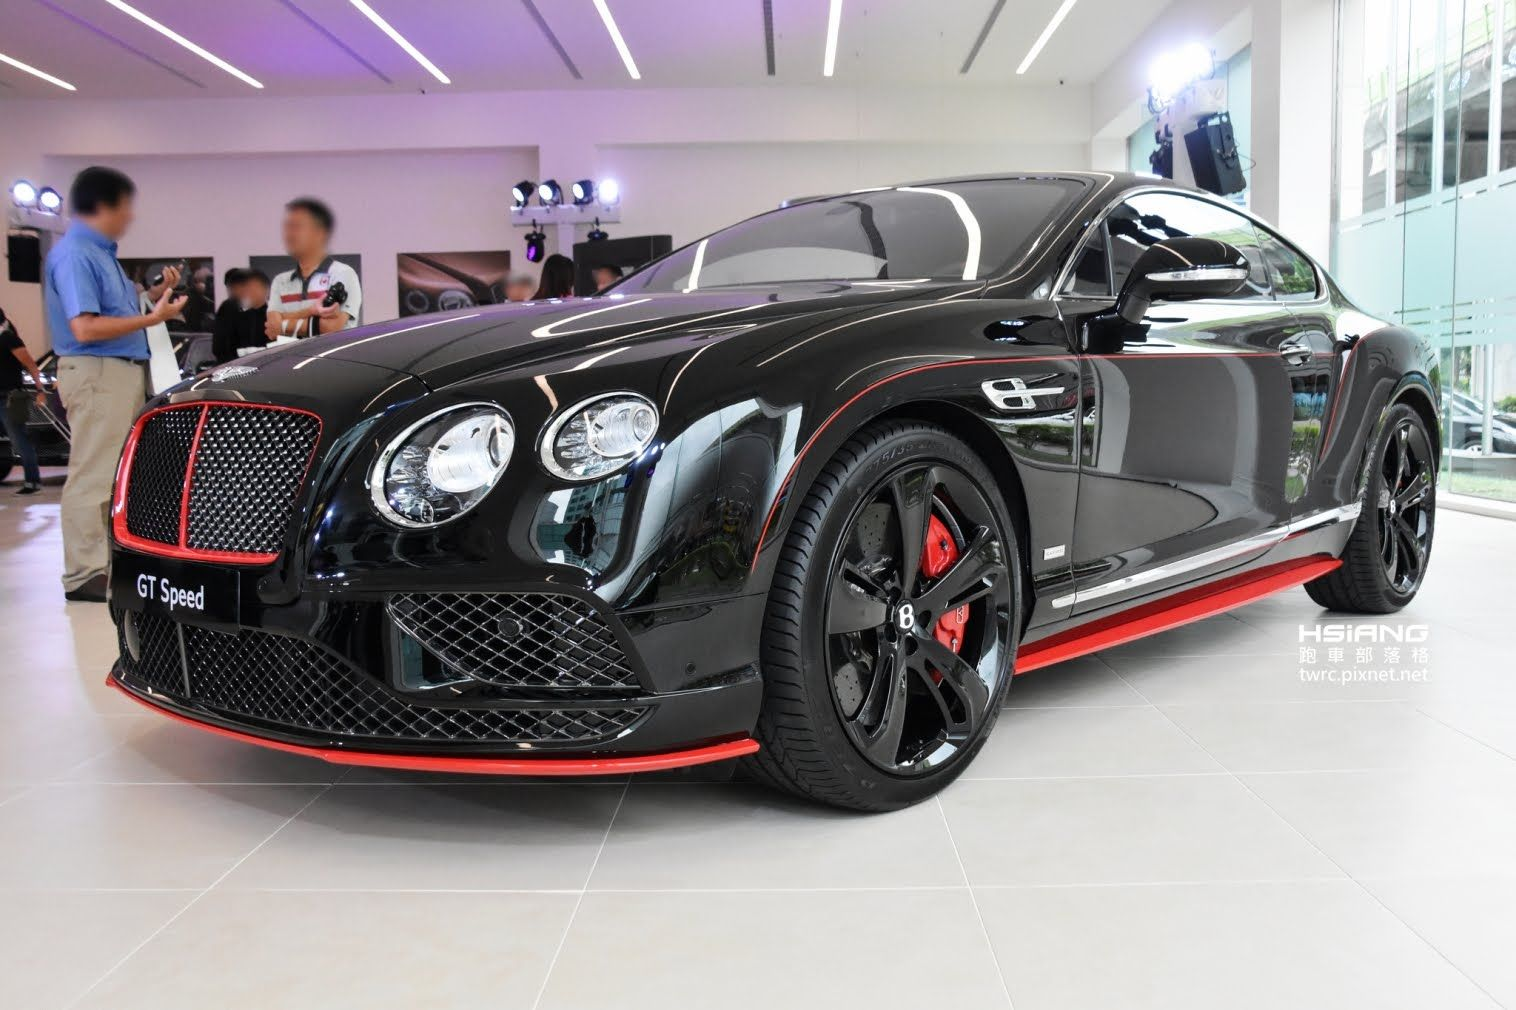 bentley continental gt speed black edition bentley pinterest bentley continental results. Black Bedroom Furniture Sets. Home Design Ideas